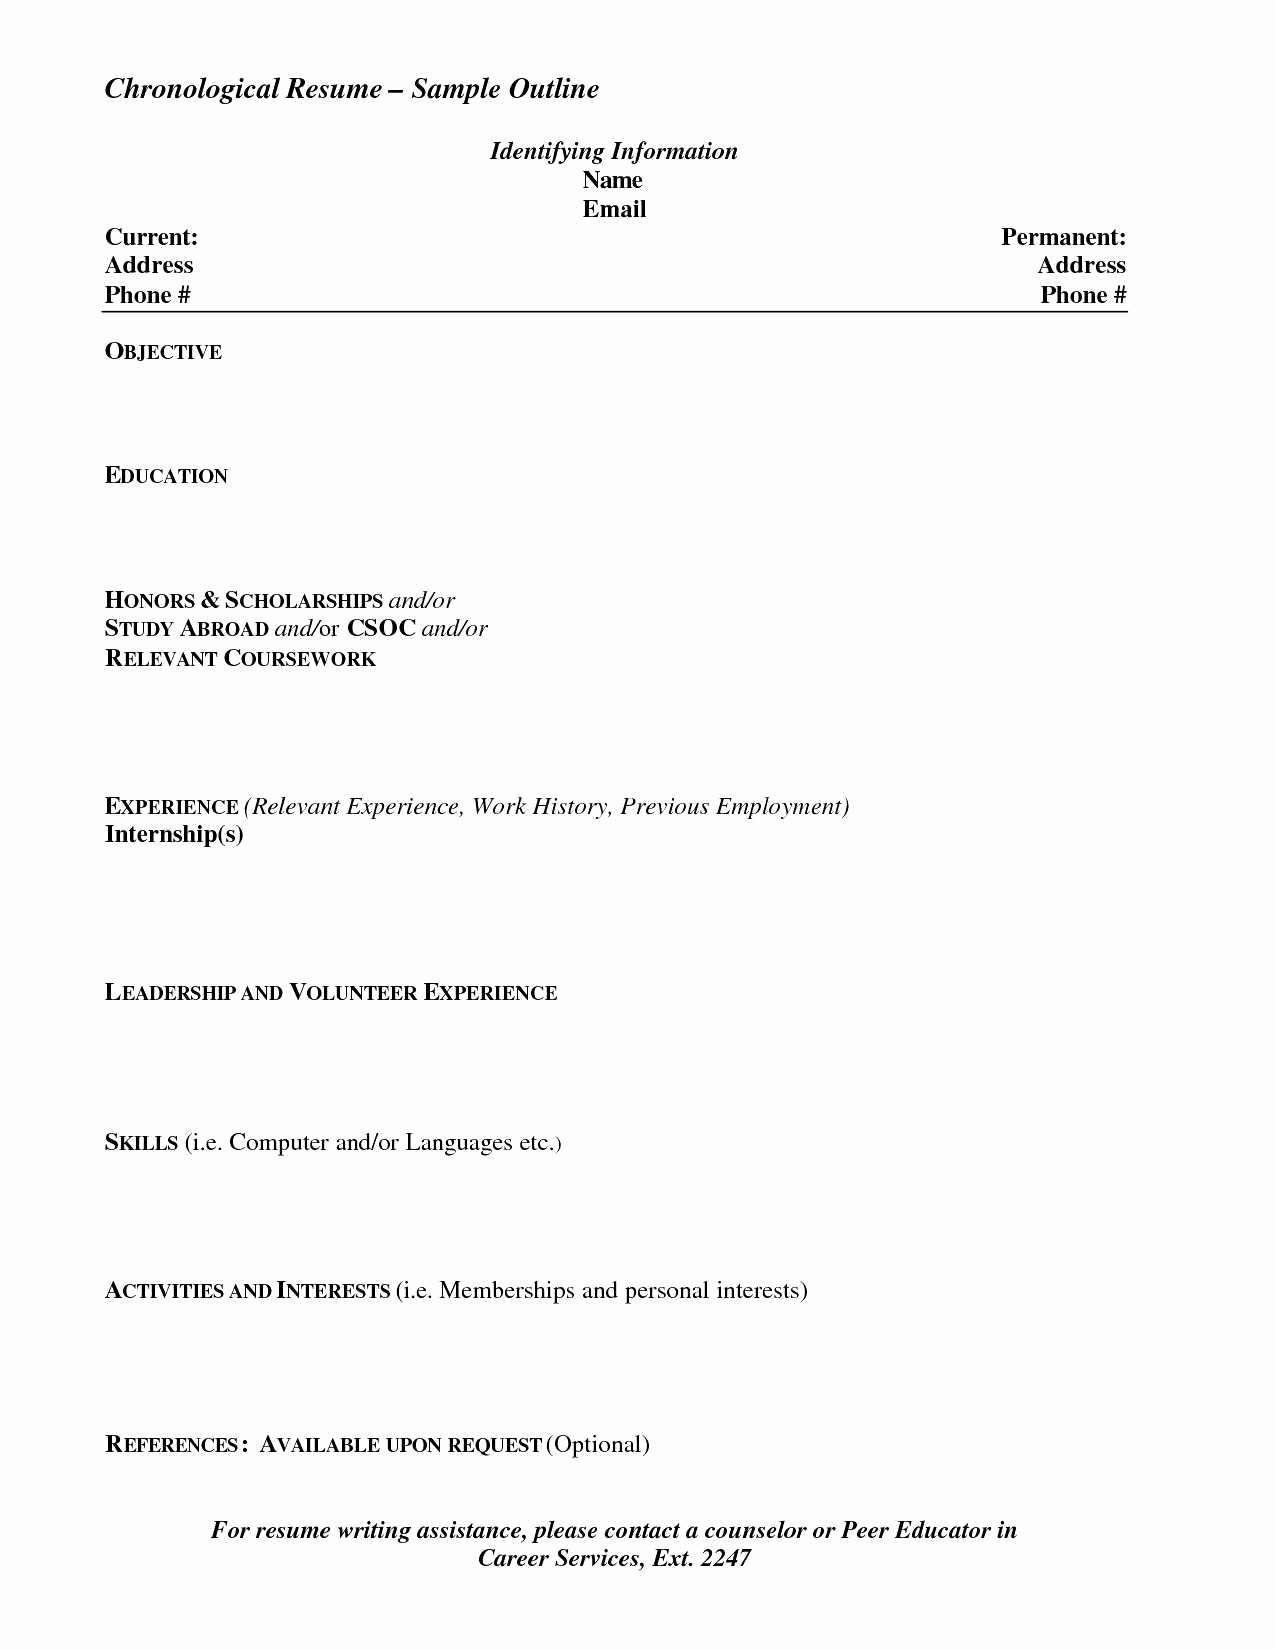 Synonym Collaborate - Collaborate Synonym Resume